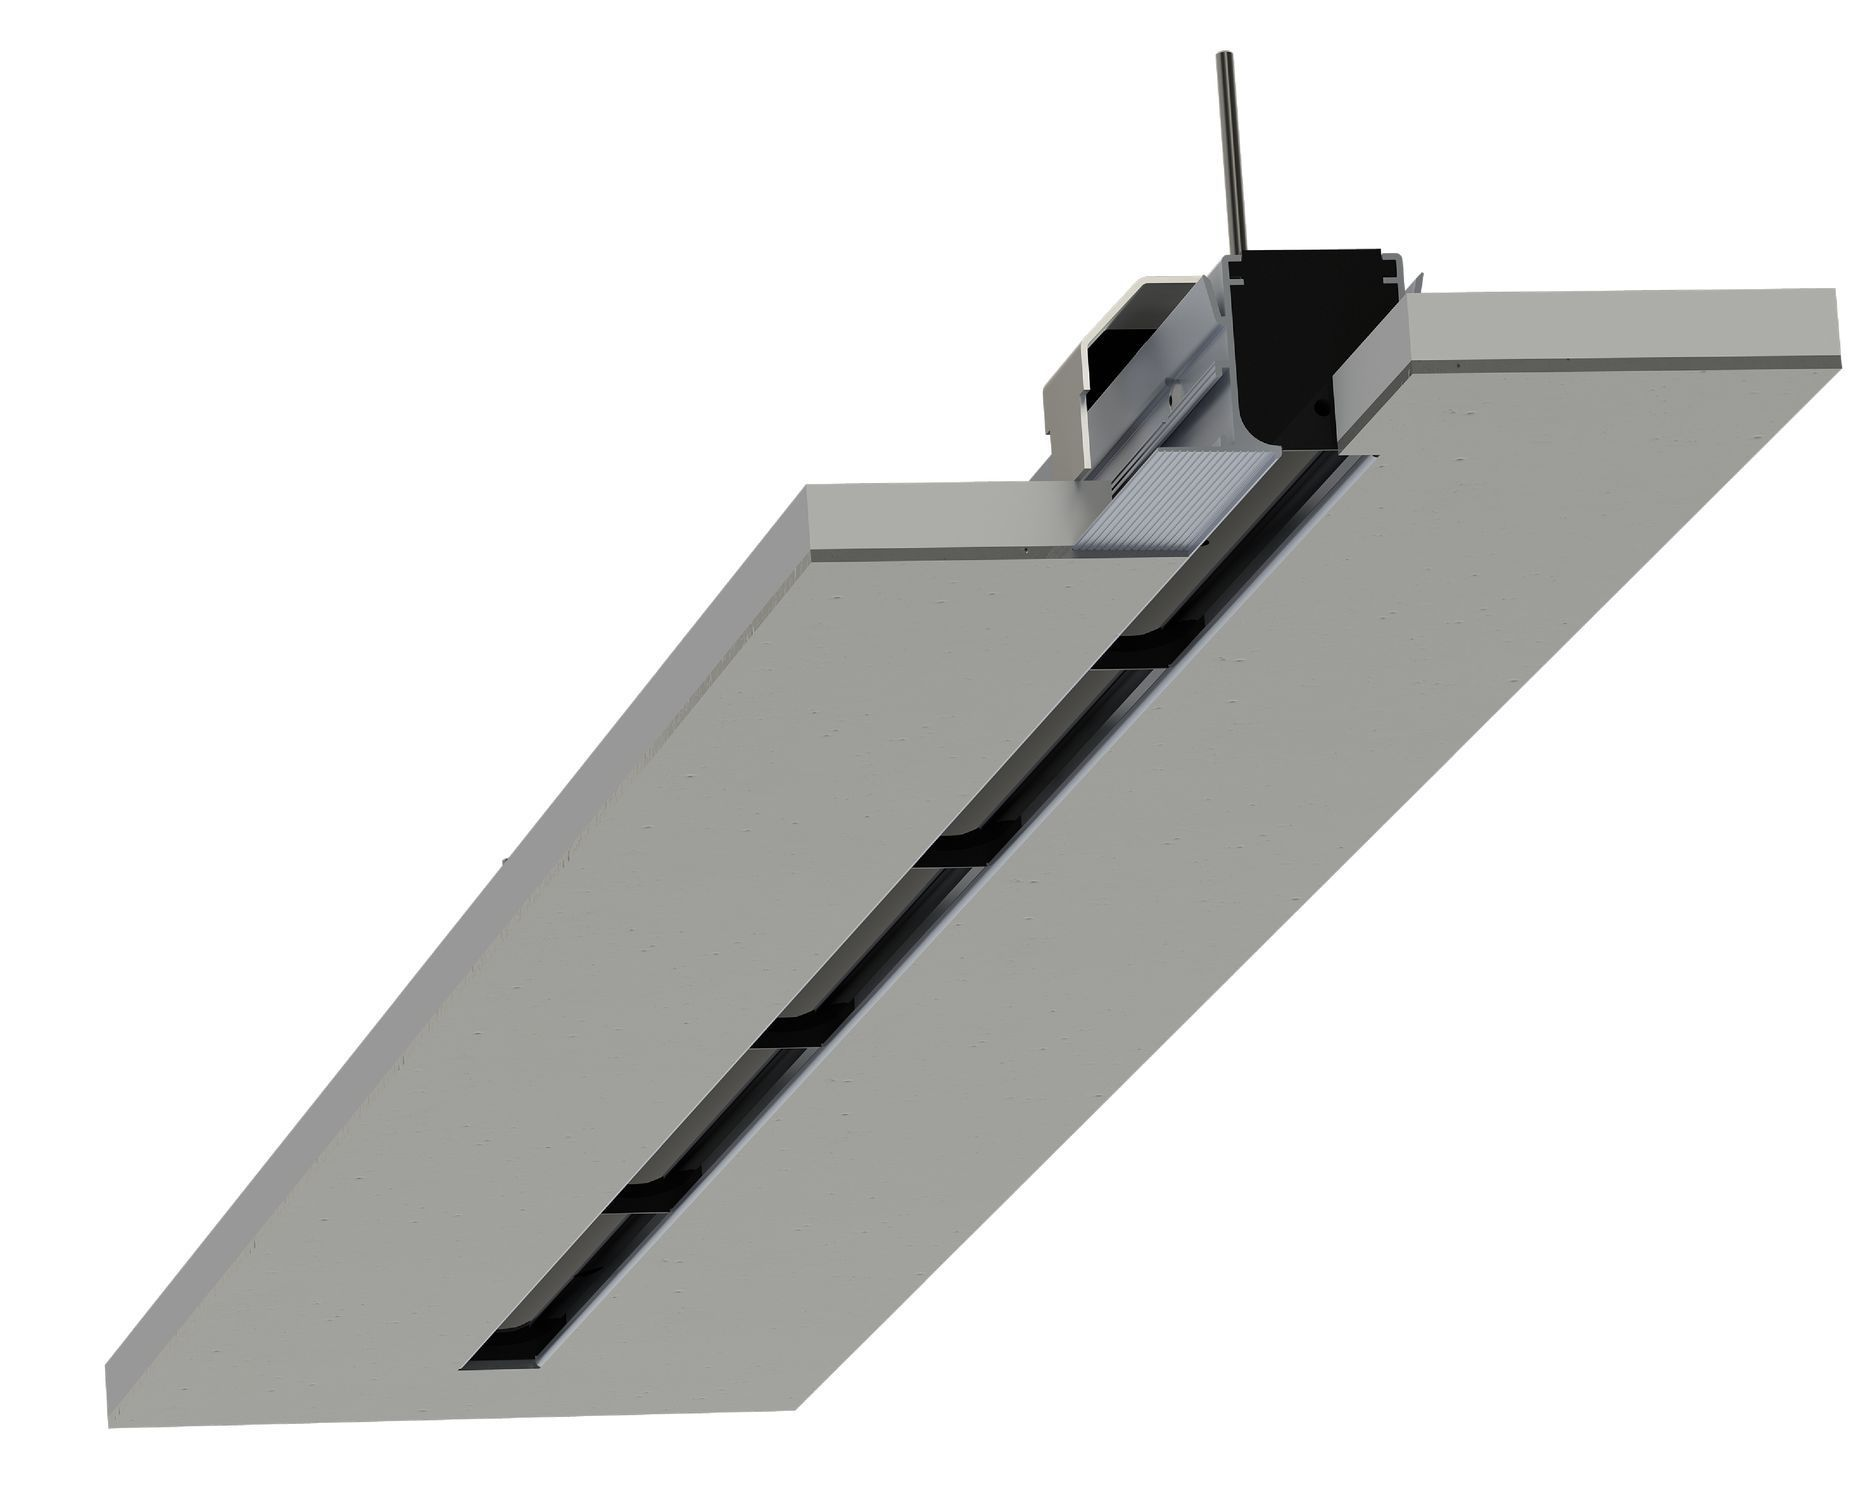 diffusers rickardair rickard bottom volume ratio constant linear diffuser cln ceiling product slot